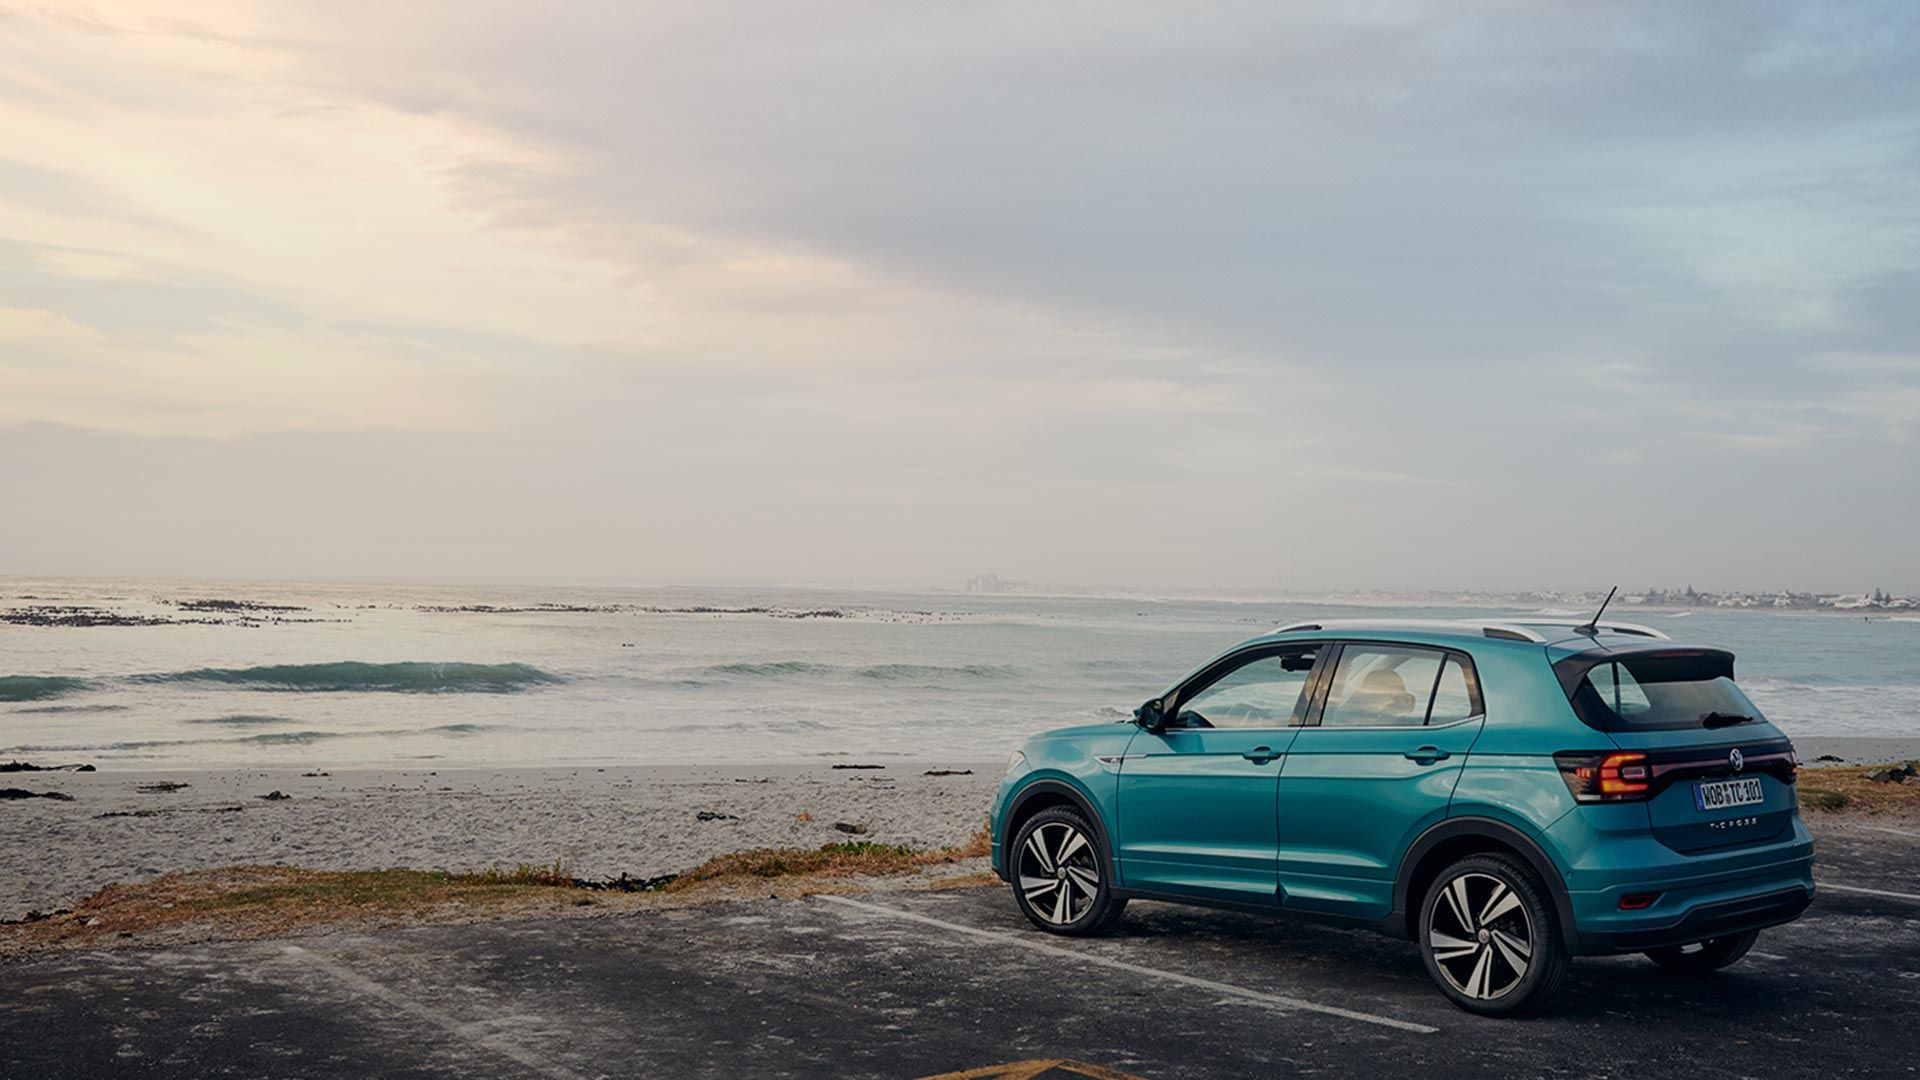 Turquoise T-cross standing near beach